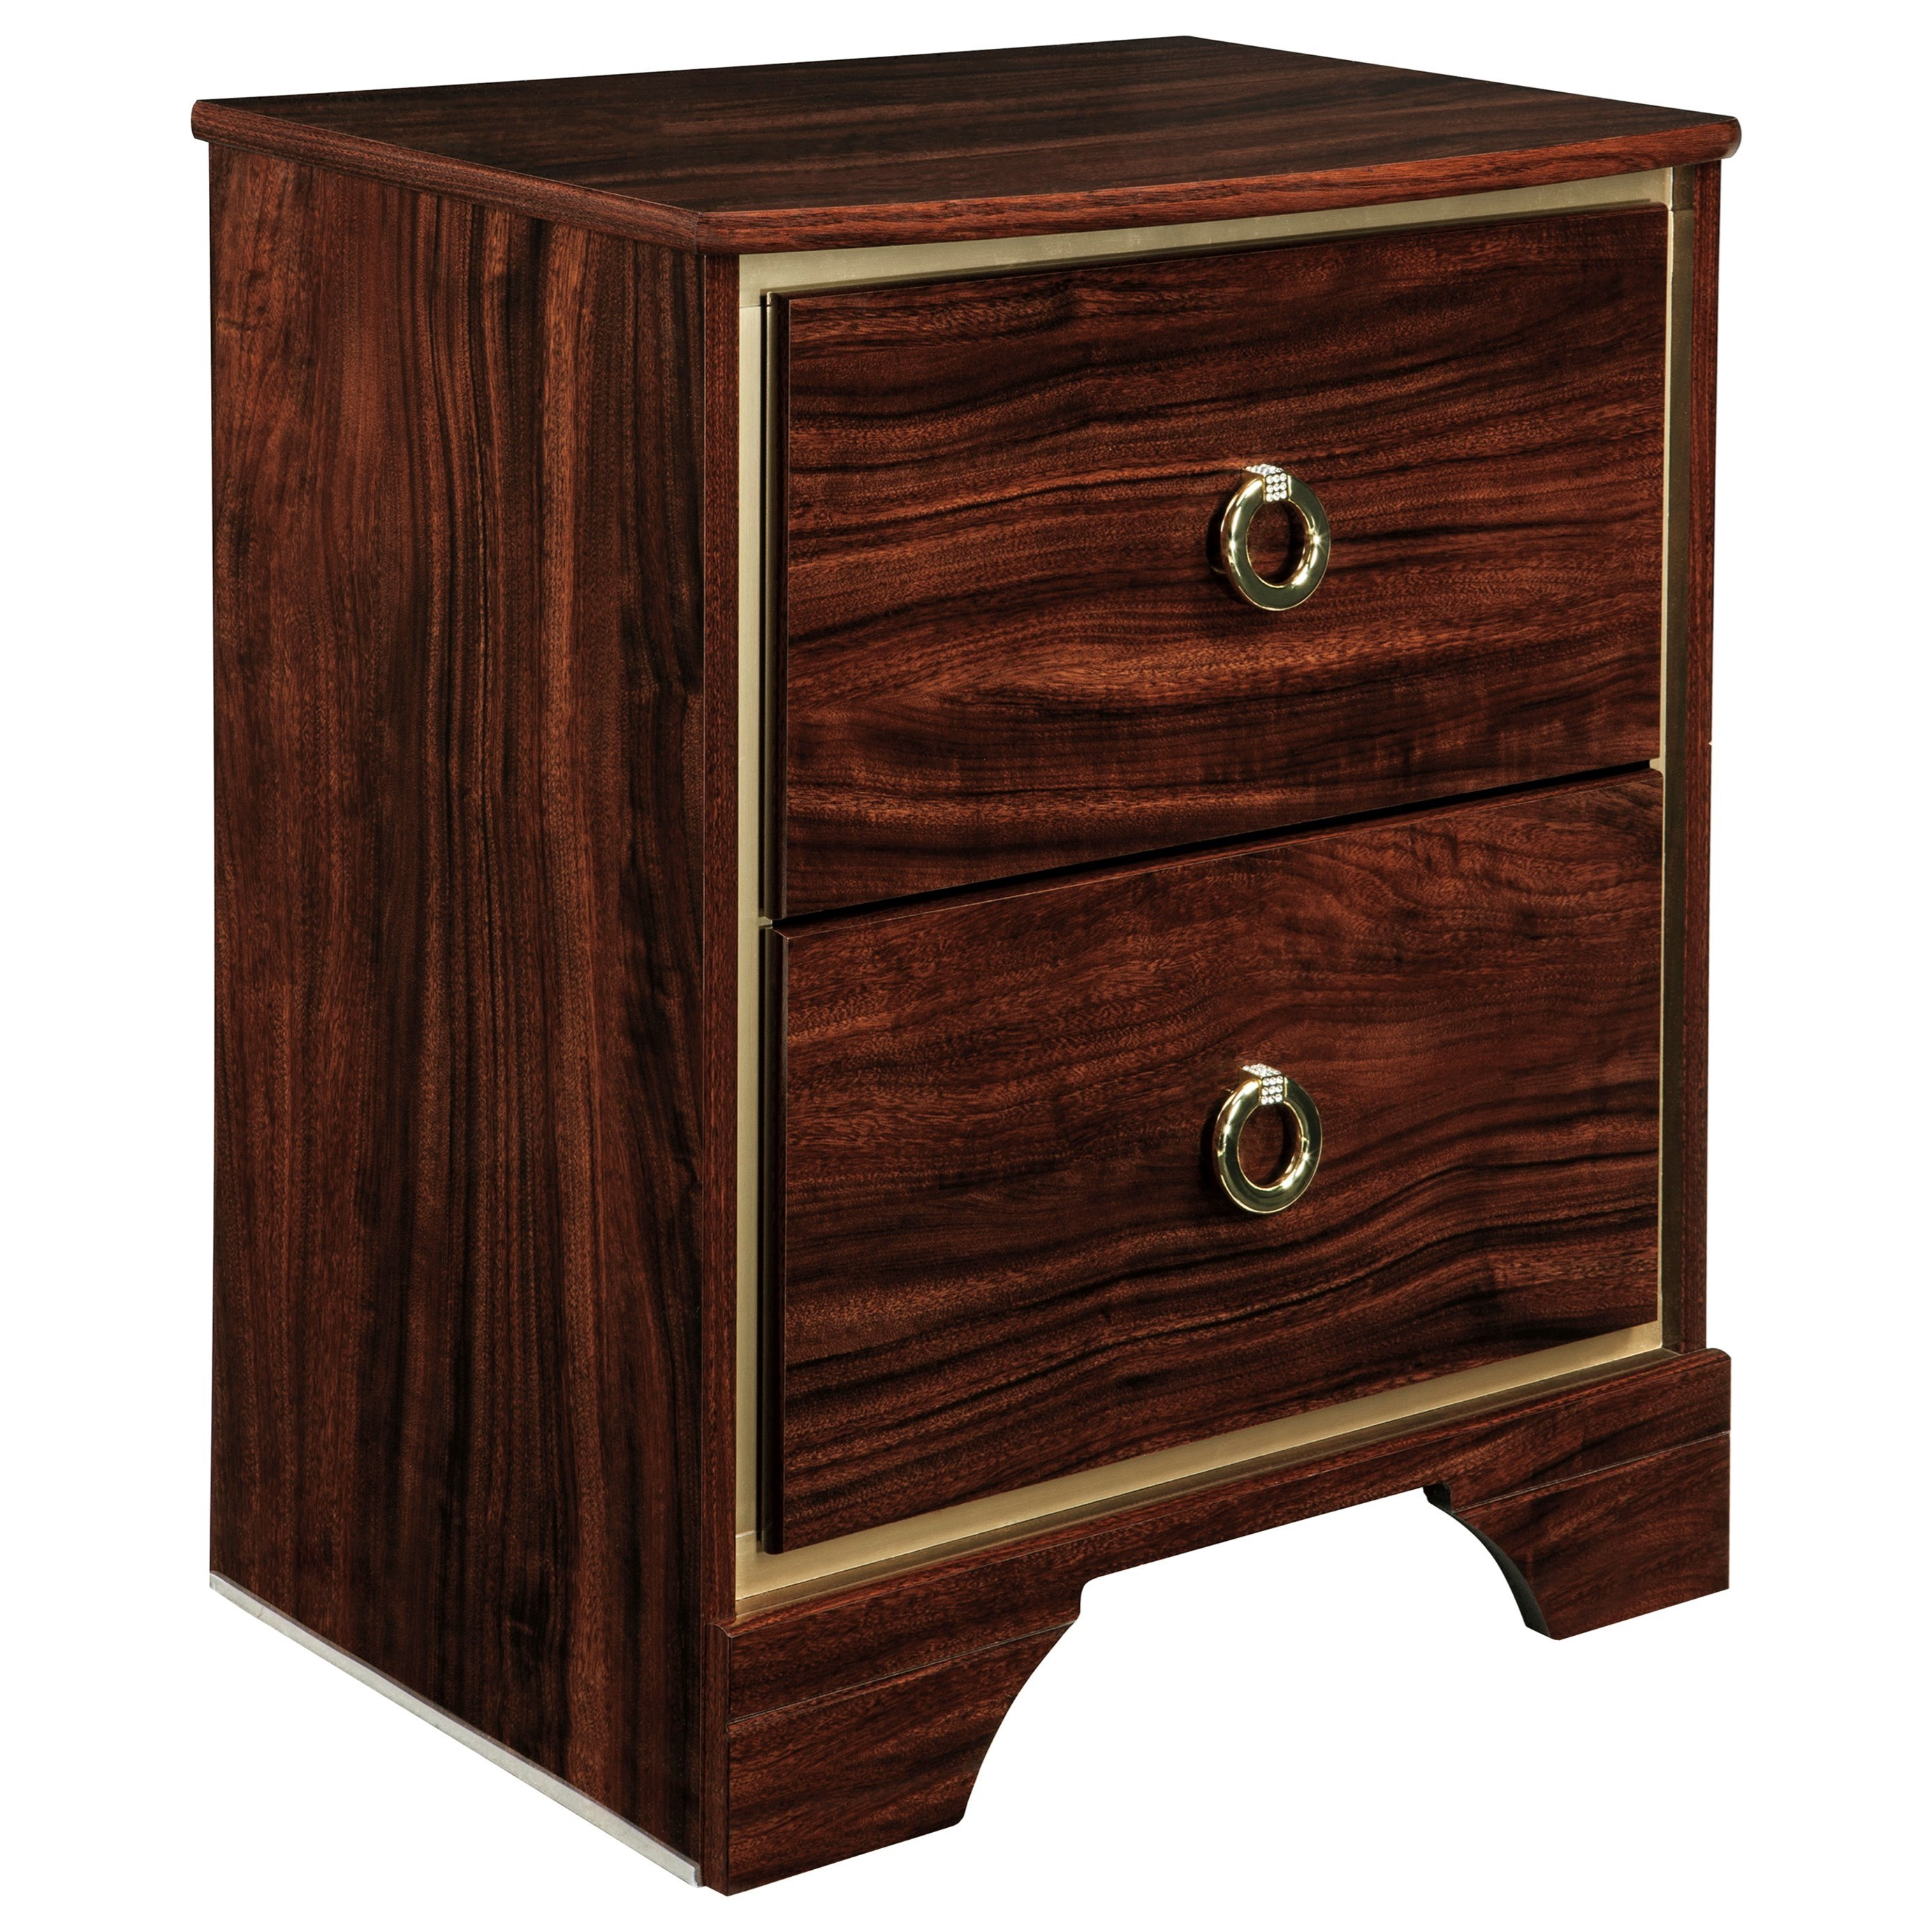 Signature Design by Ashley Lenmara Two Drawer Night Stand - Item Number: B247-92